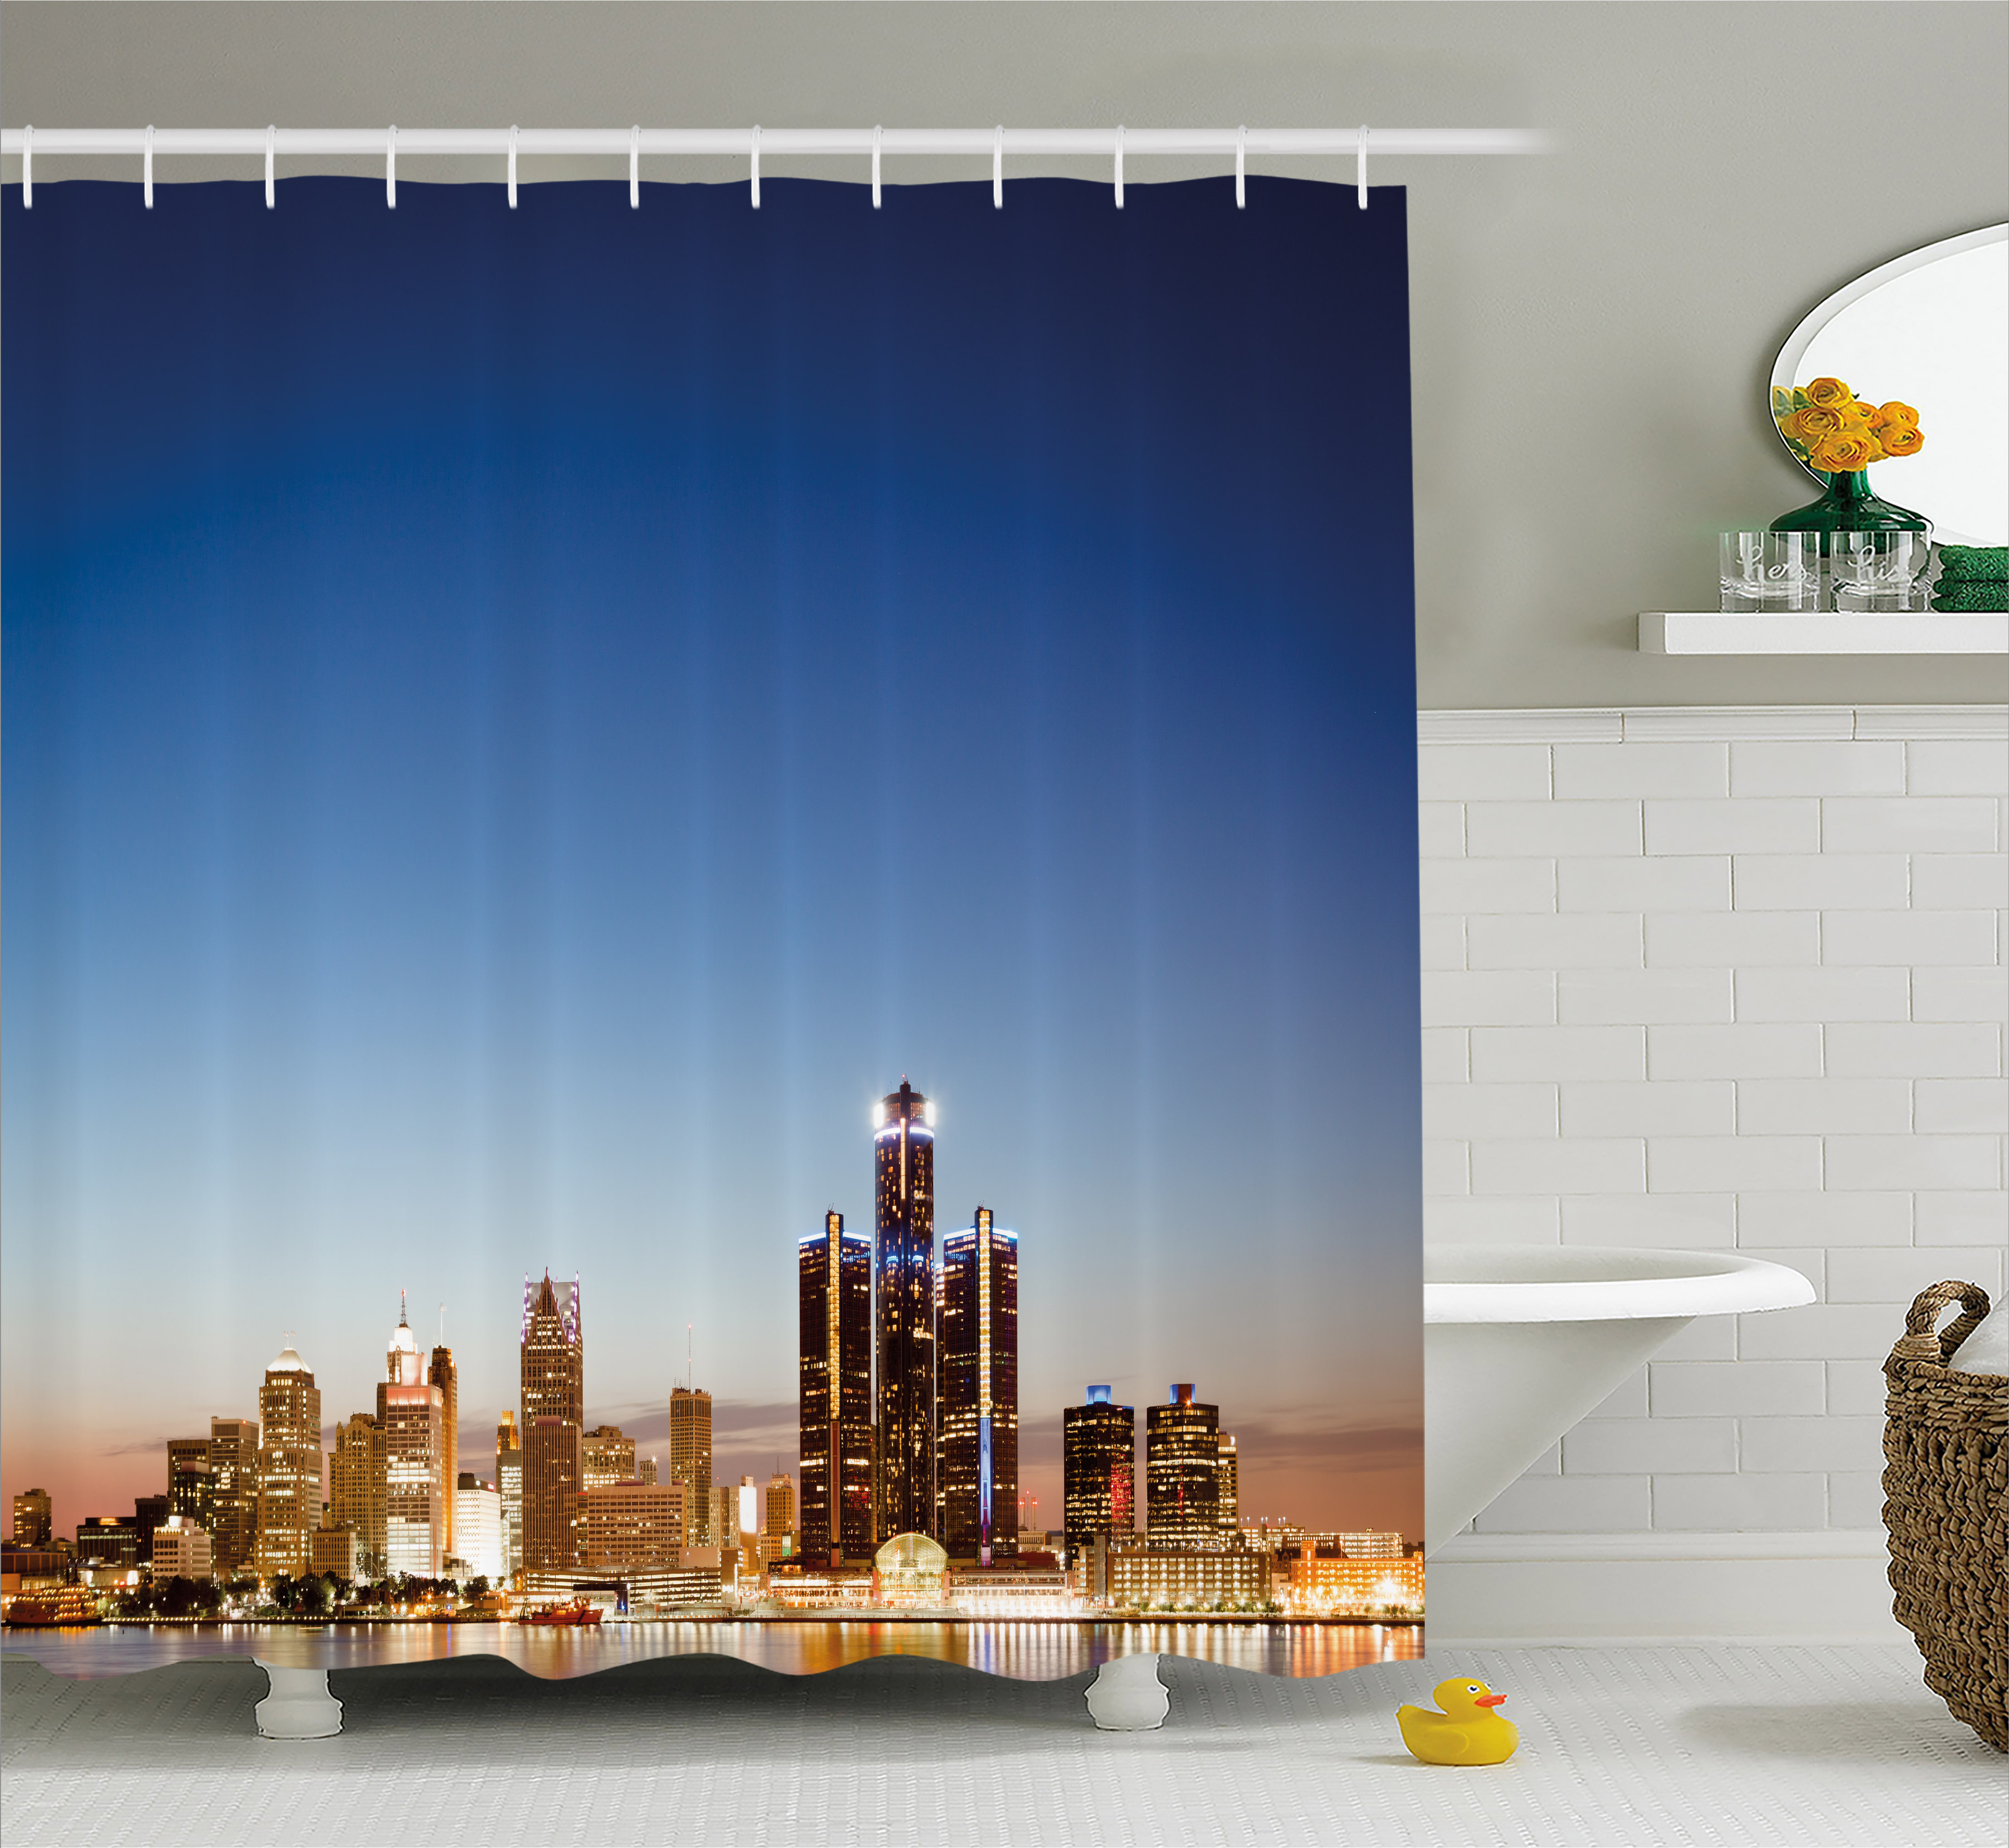 Detroit Shower Curtain, Michigan Skyline at Twilight Waterfront Lively City Serene Calm Travel Destination, Fabric Bathroom Set with Hooks, Multicolor, by Ambesonne